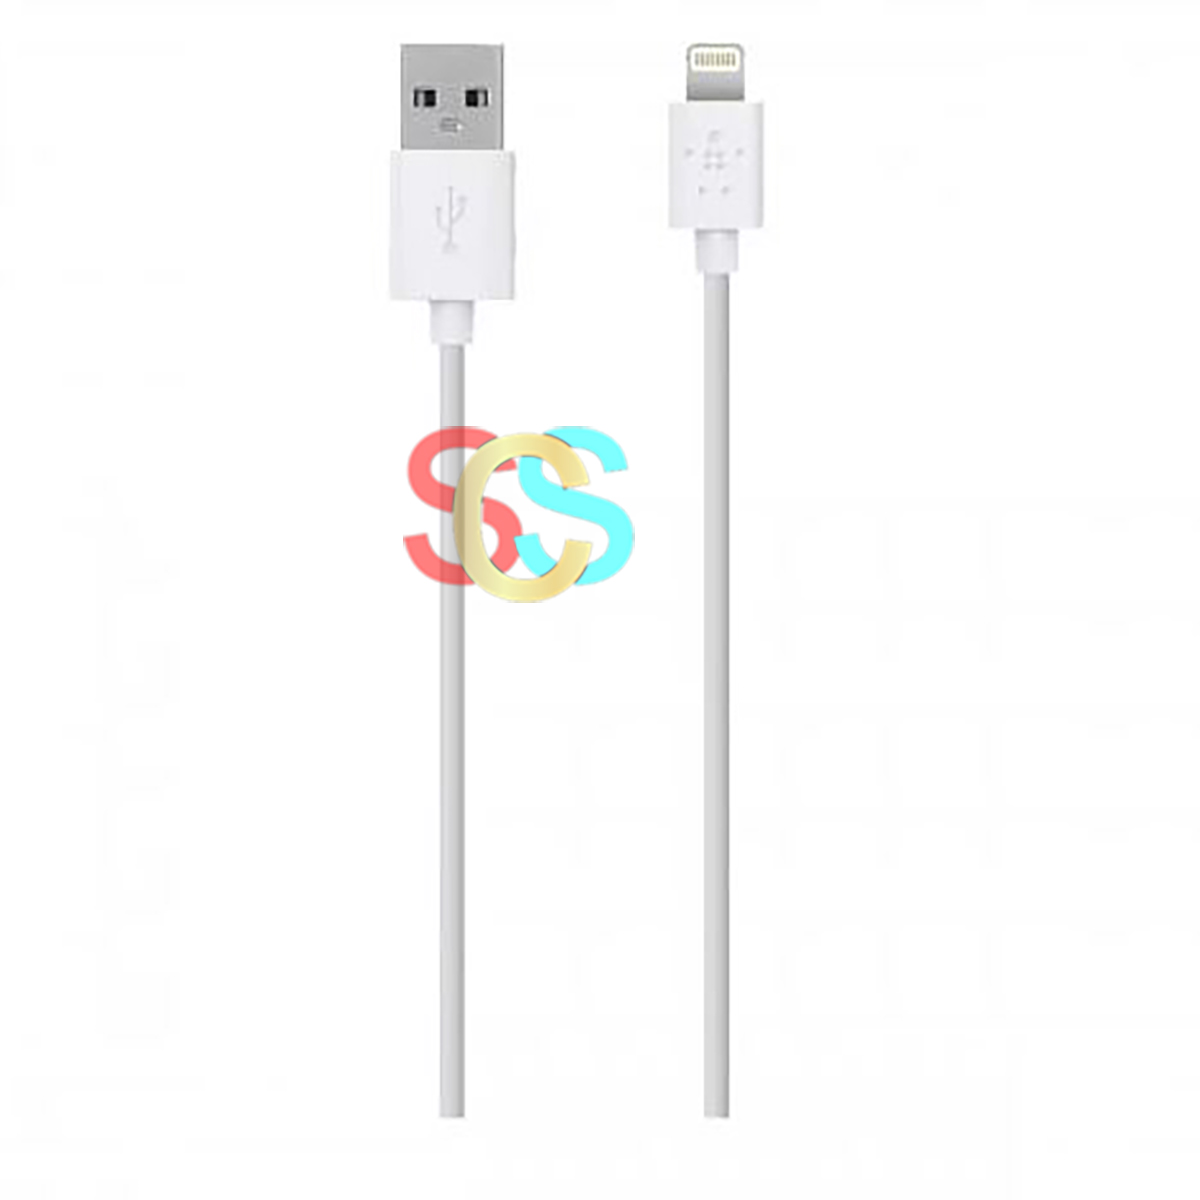 Belkin Lightning Male to USB Male, 1.2 Meter, White Charging & Data Cable